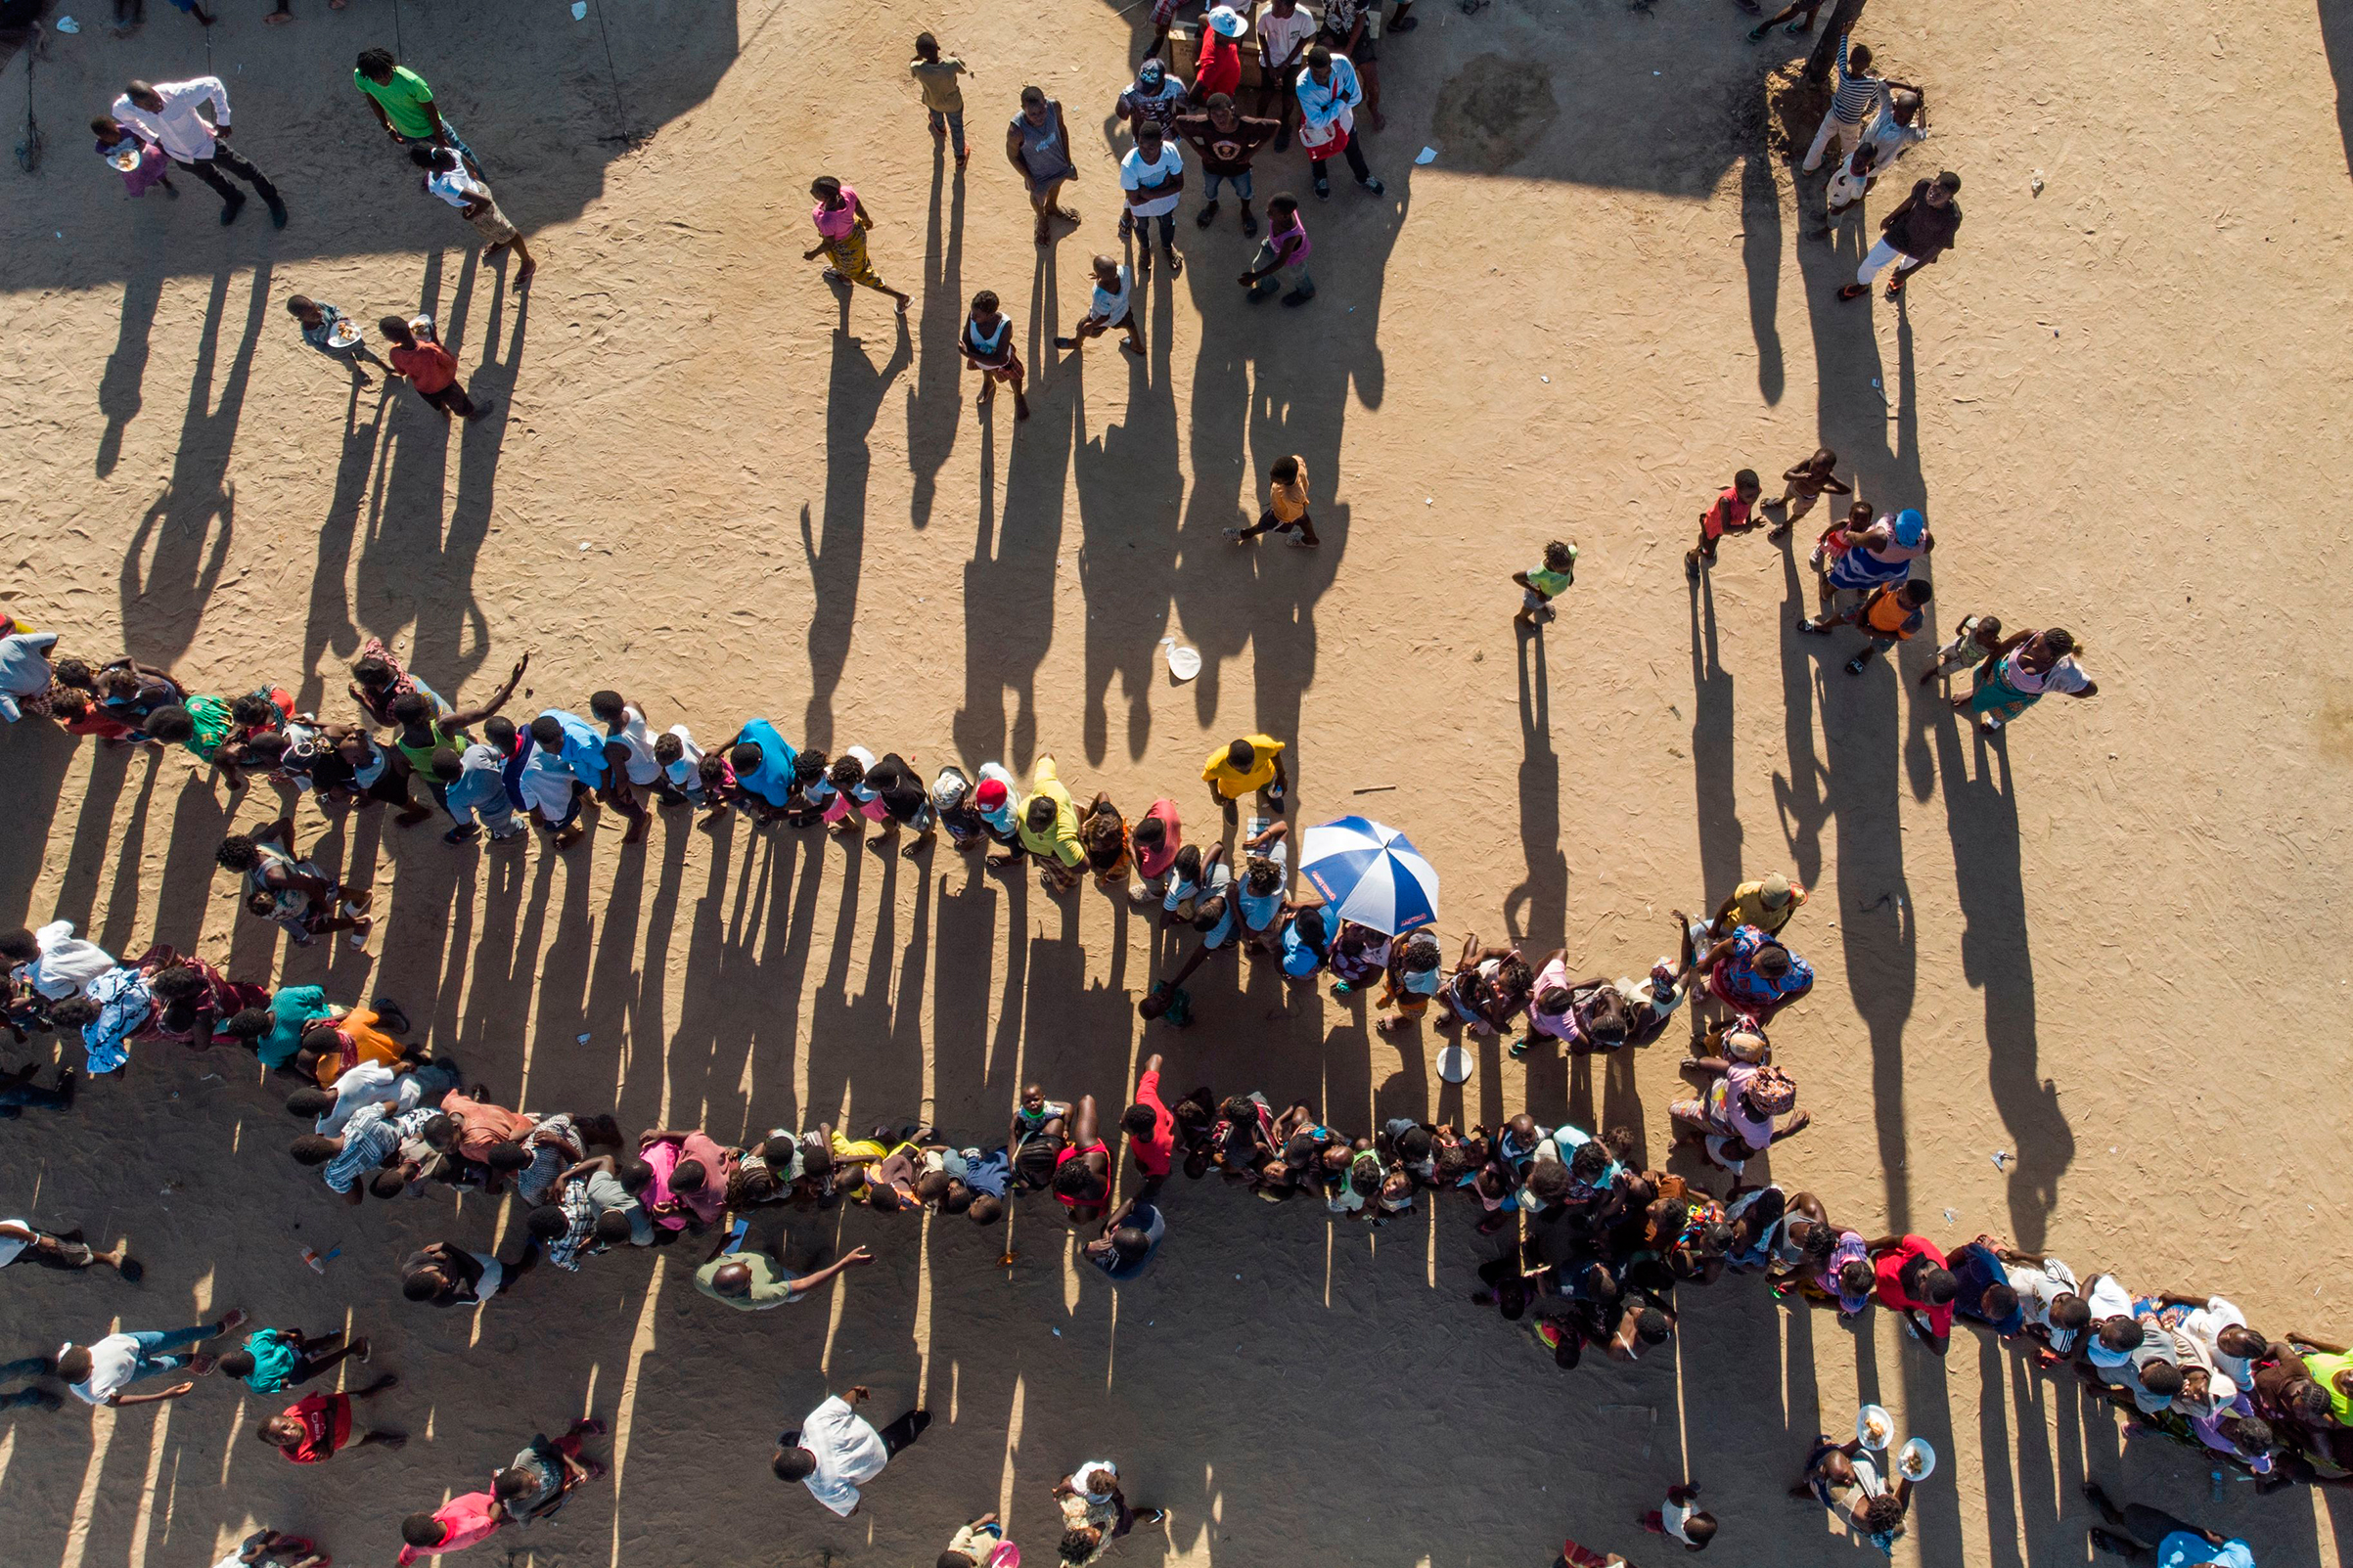 Internally displaced persons wait for supplies at the Picoco refugee camp in Beira, on April 1, 2019.